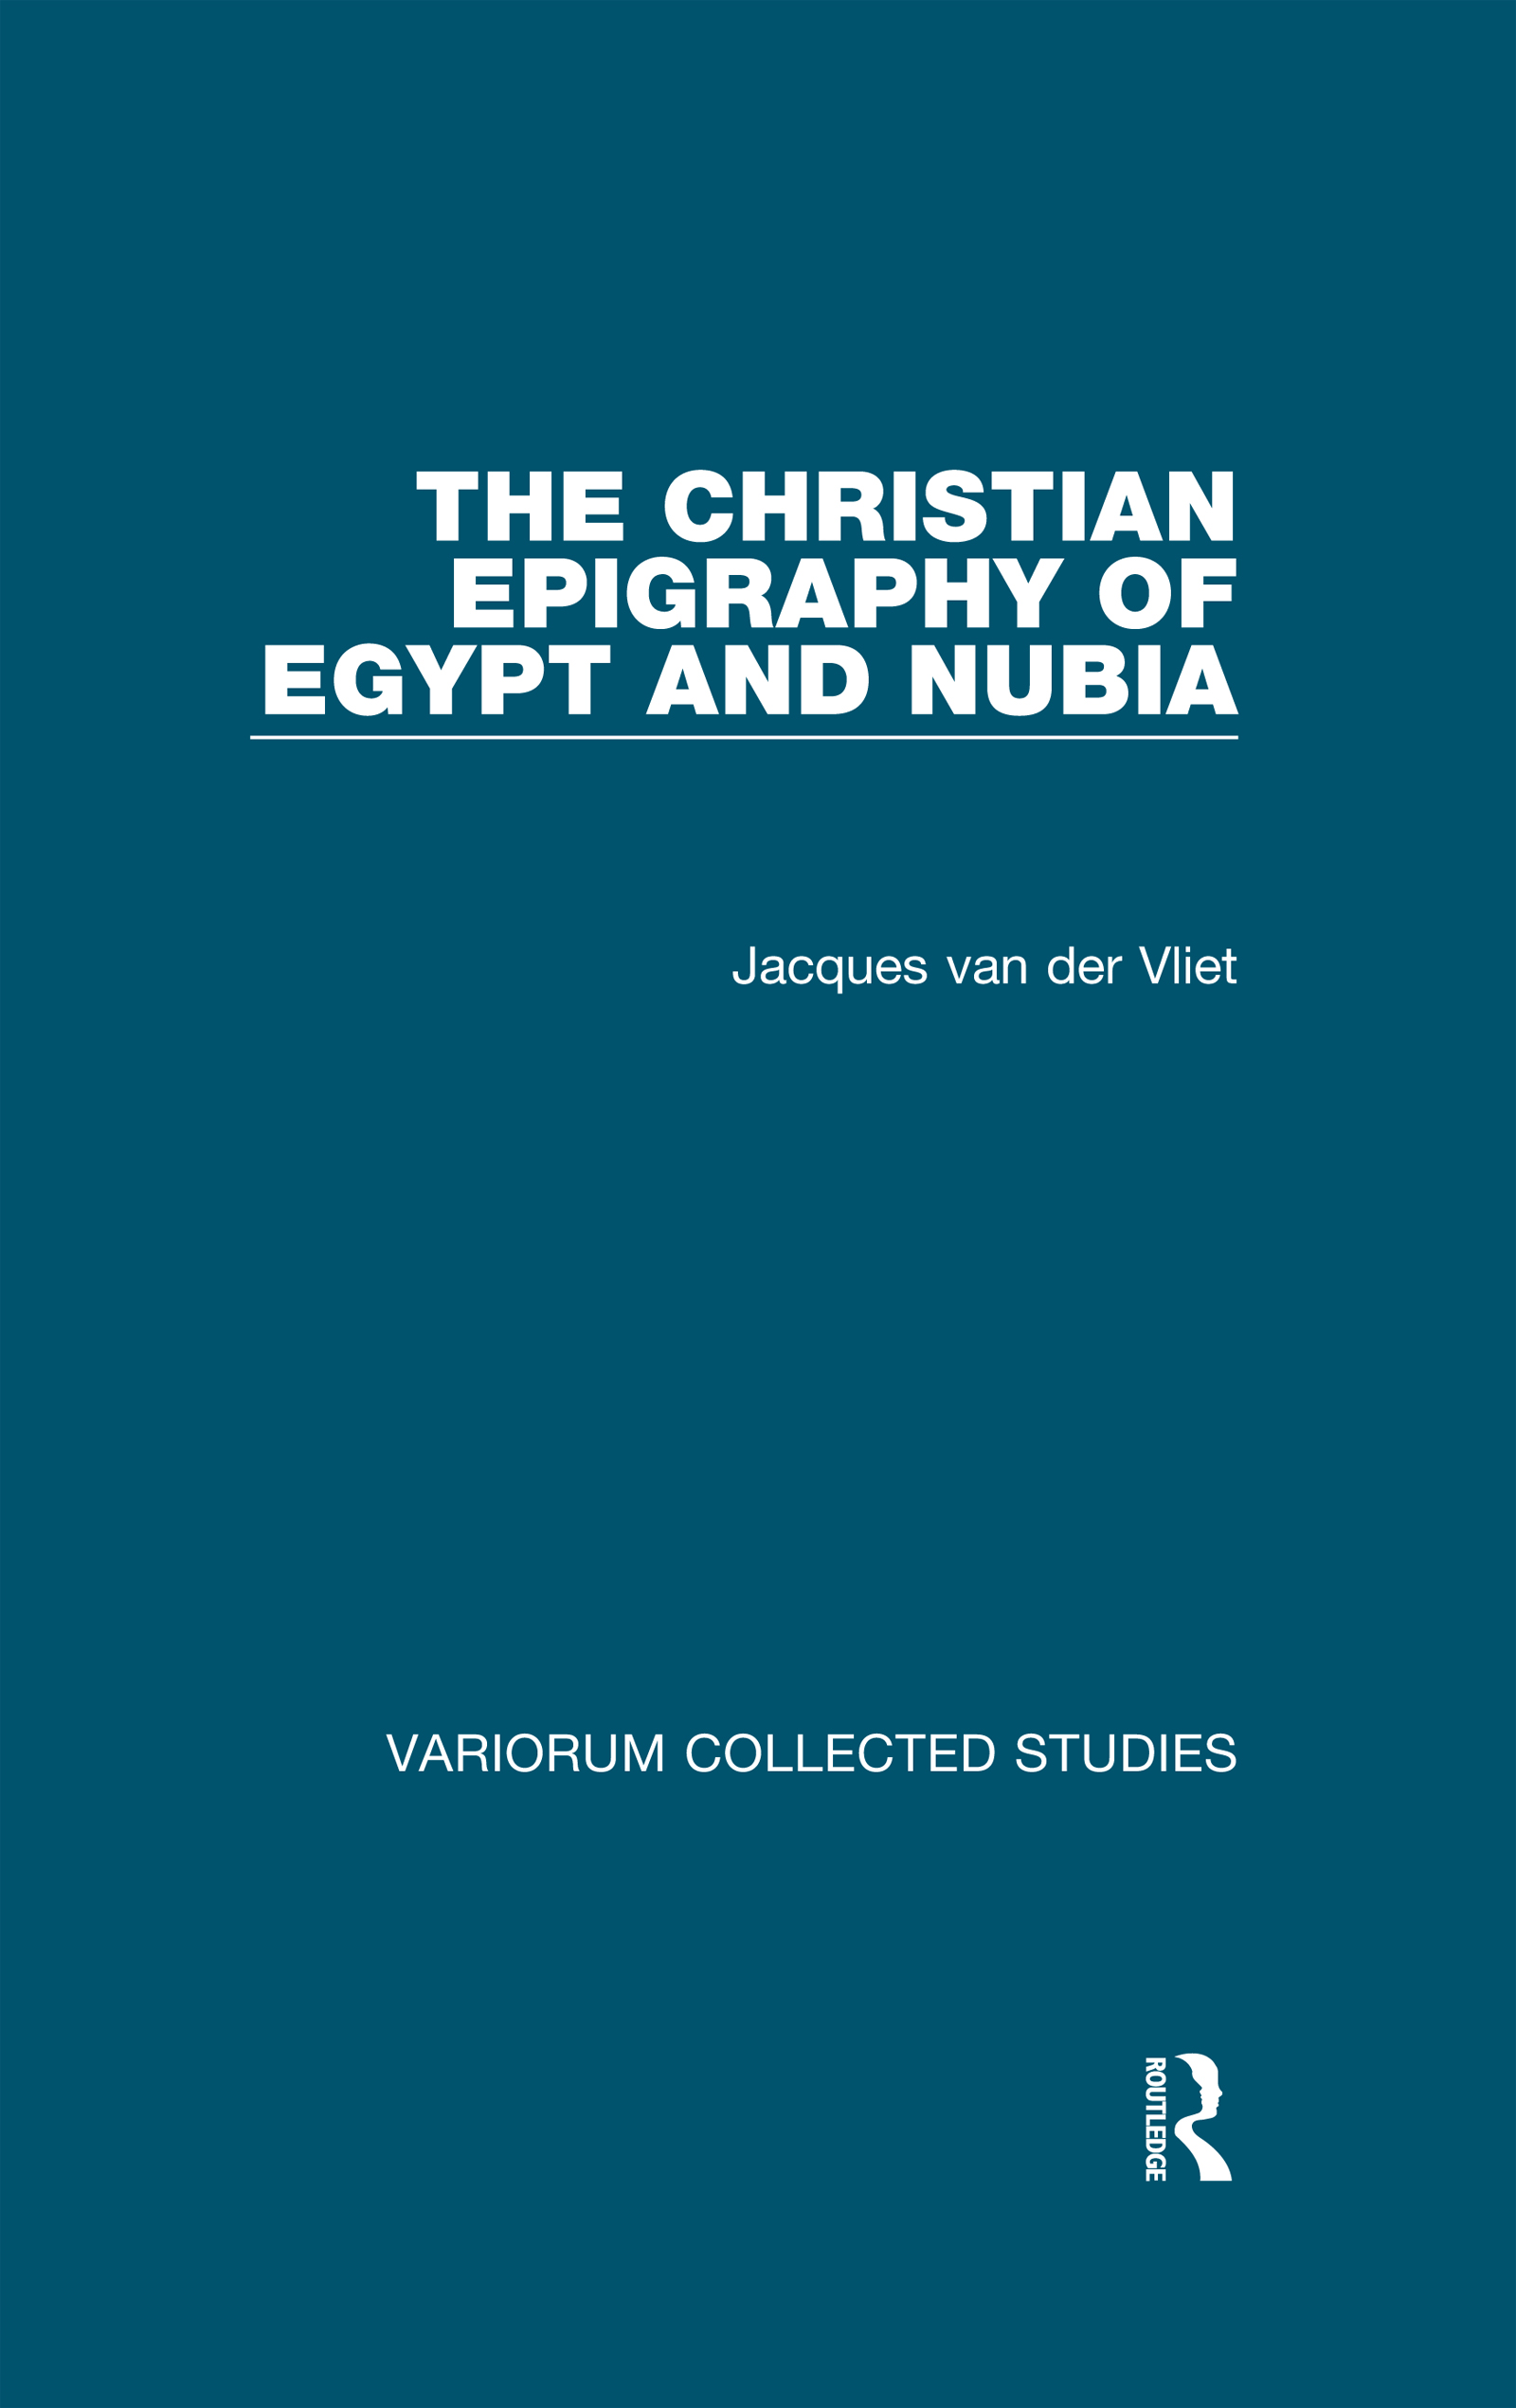 The Christian Epigraphy of Egypt and Nubia